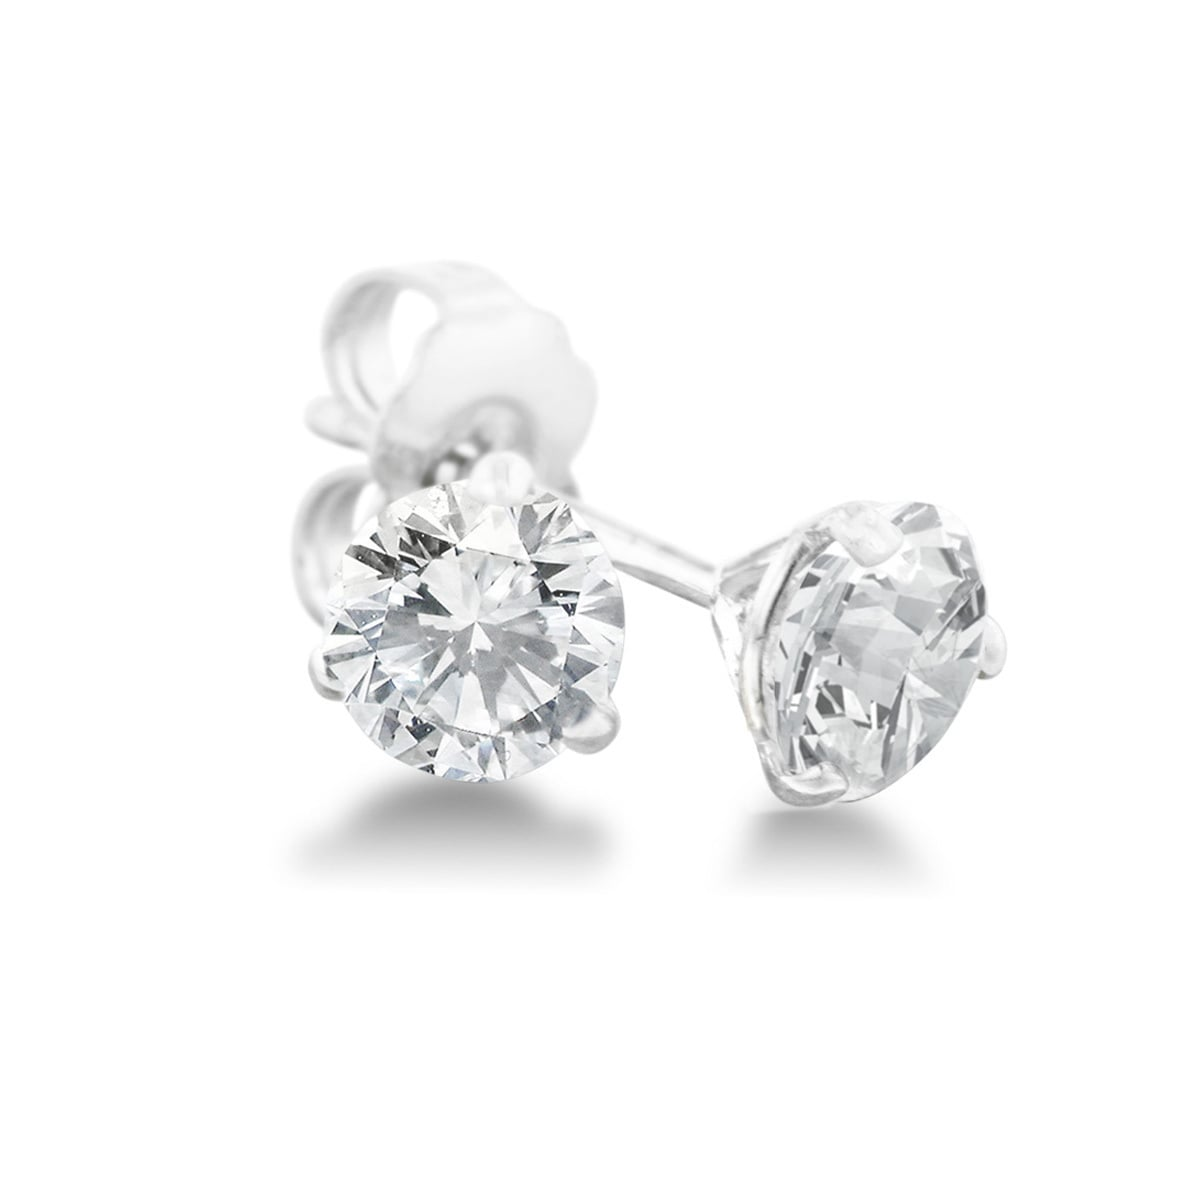 1 2 Carat Diamond Martini Stud Earrings In 14 Karat White Gold J K I2 I3 On Free Shipping Today 10175296